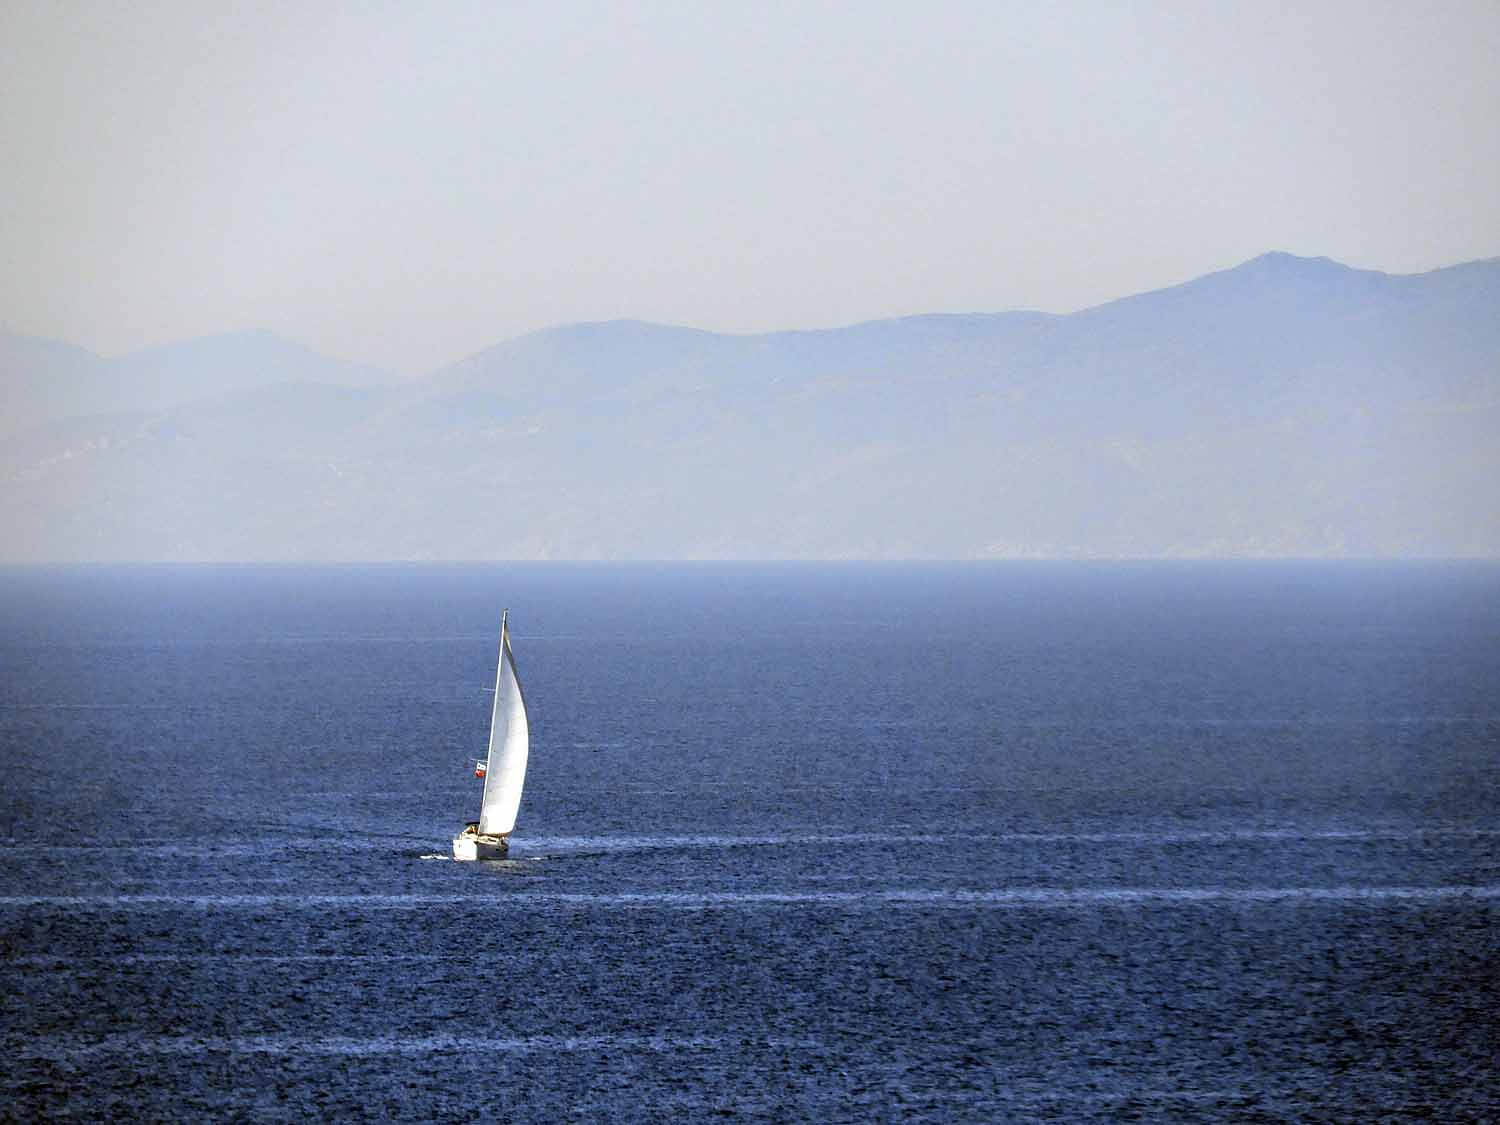 greece-santorini-sailboat.jpg